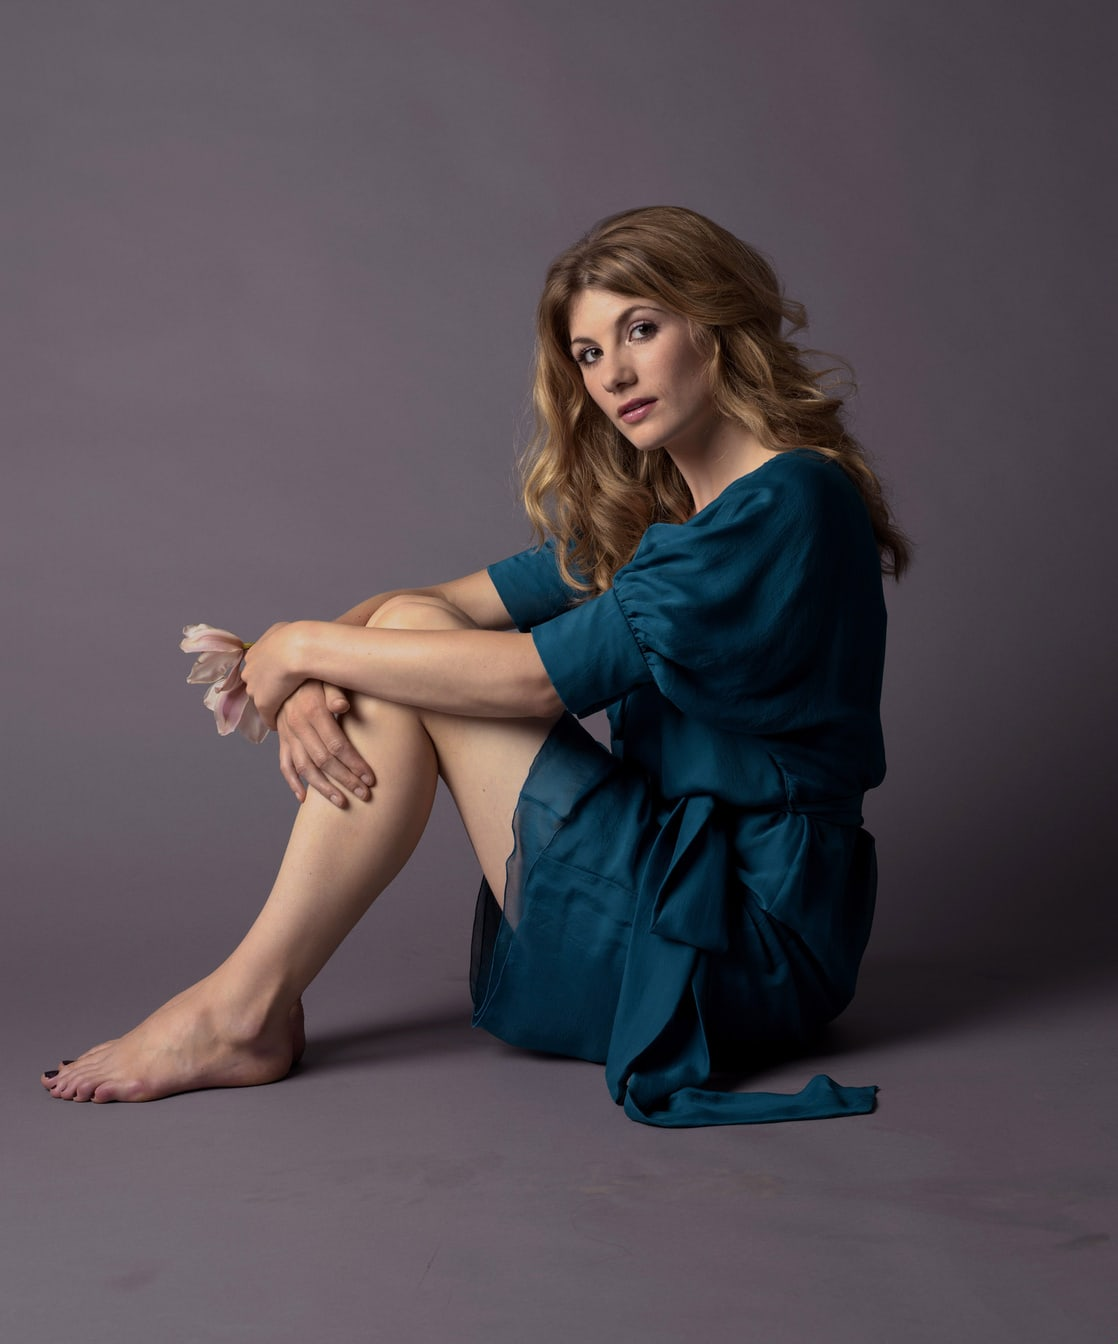 jodie whittaker on venus